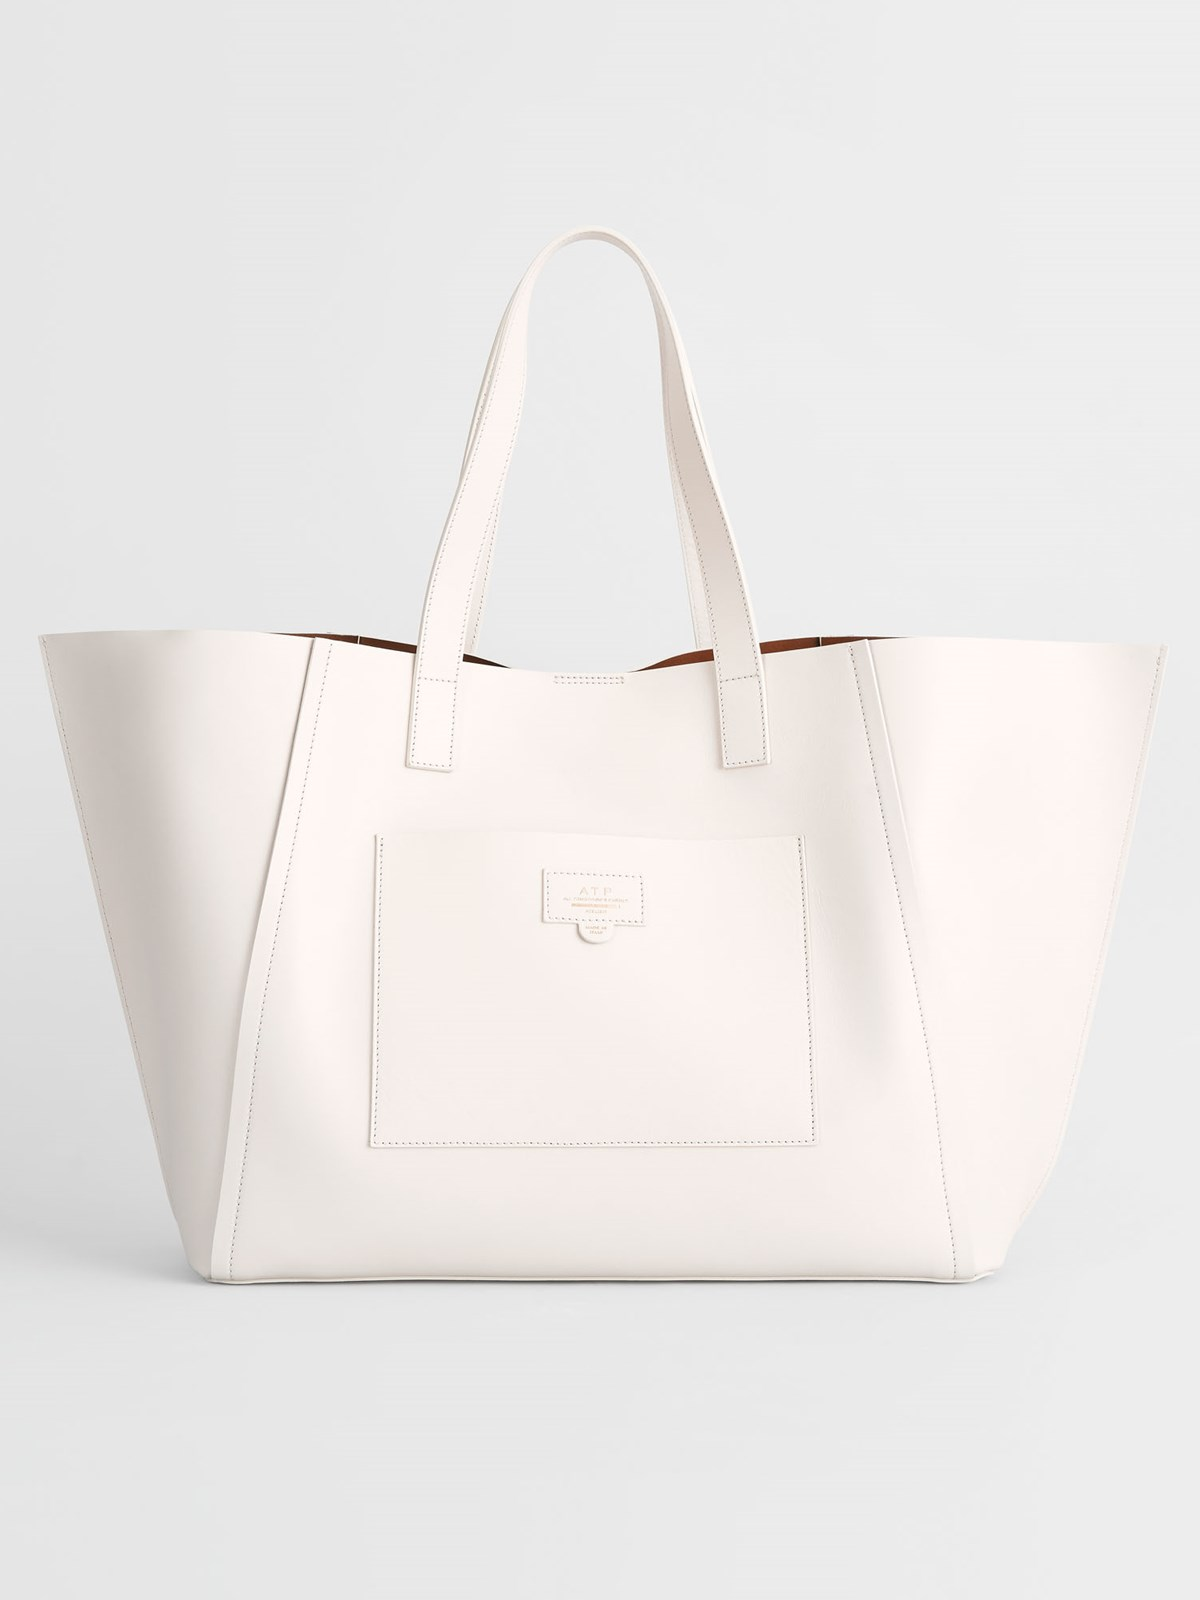 Conversano Ice White Large tote